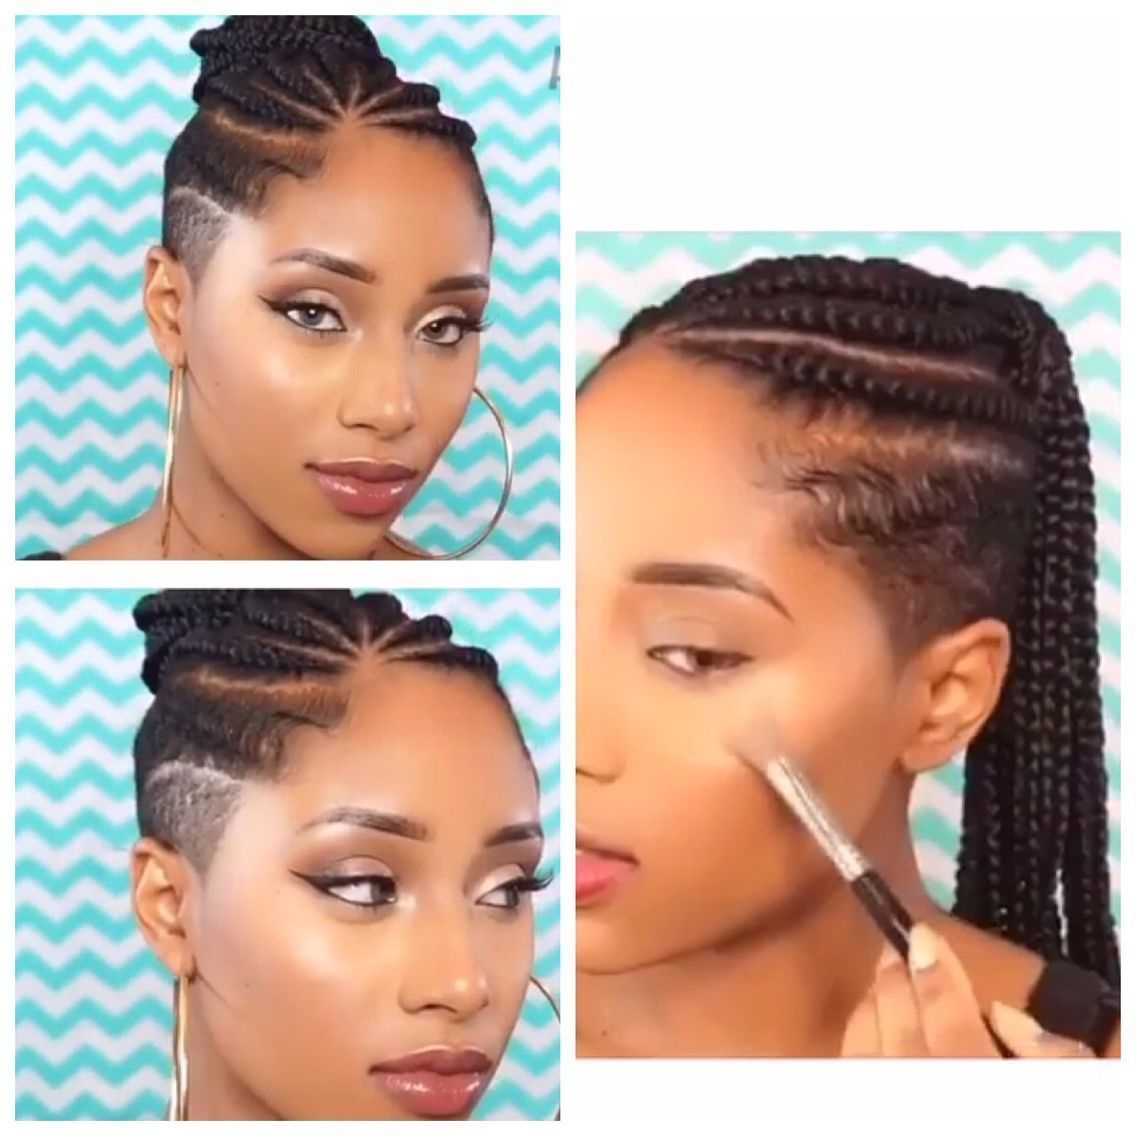 2020 Side Shaved Cornrows Braids Hairstyles In My Next Hairstyle (View 1 of 21)